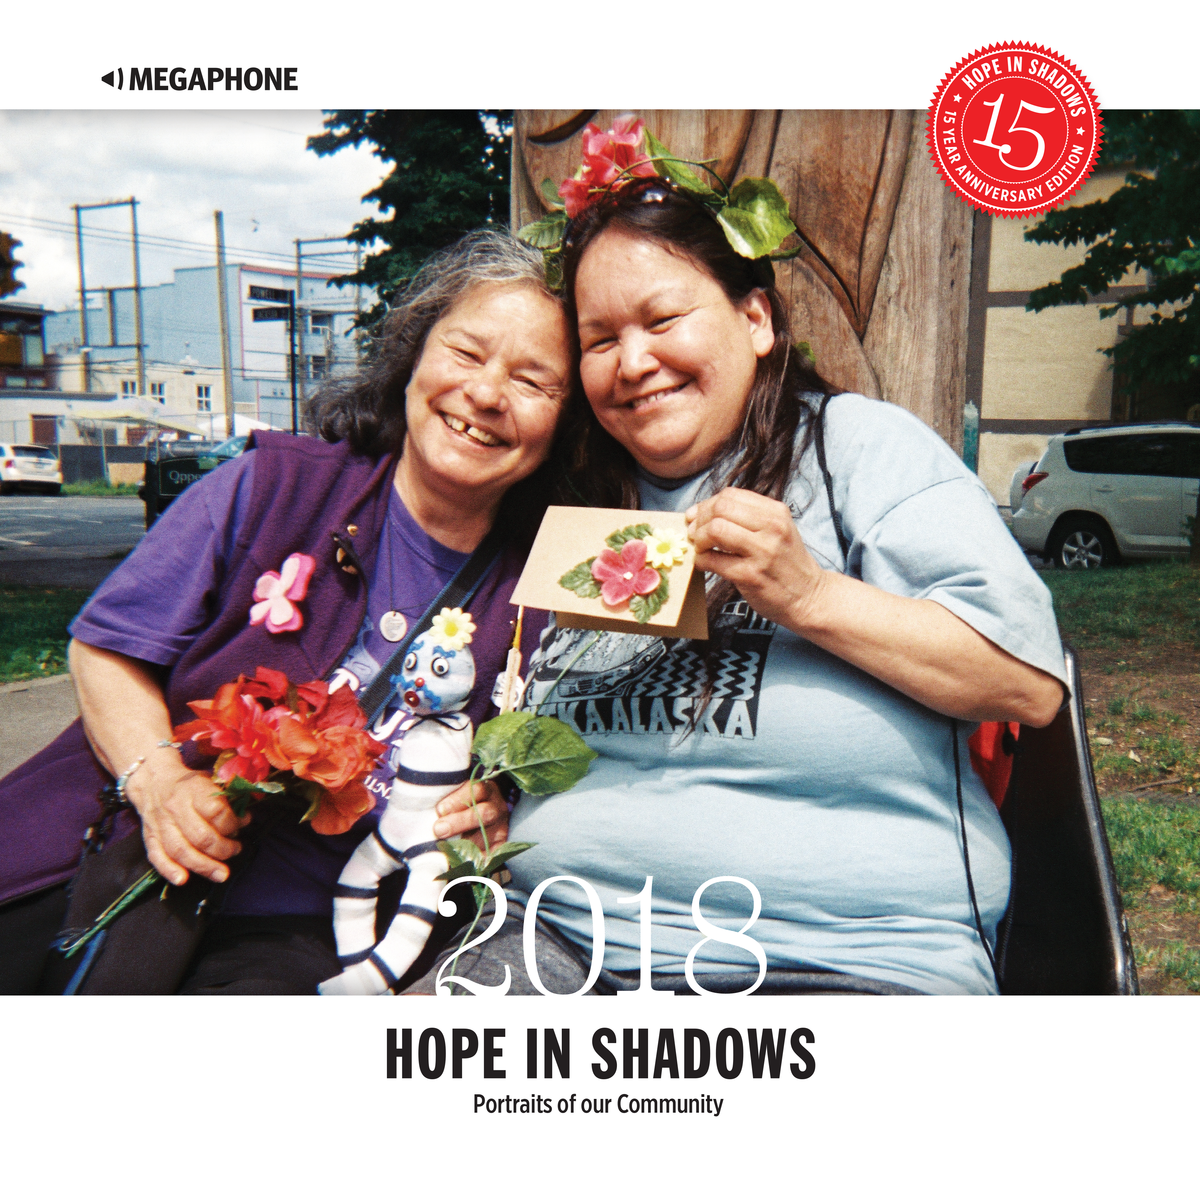 Fifteen years ago, the Hope in Shadows project was created.